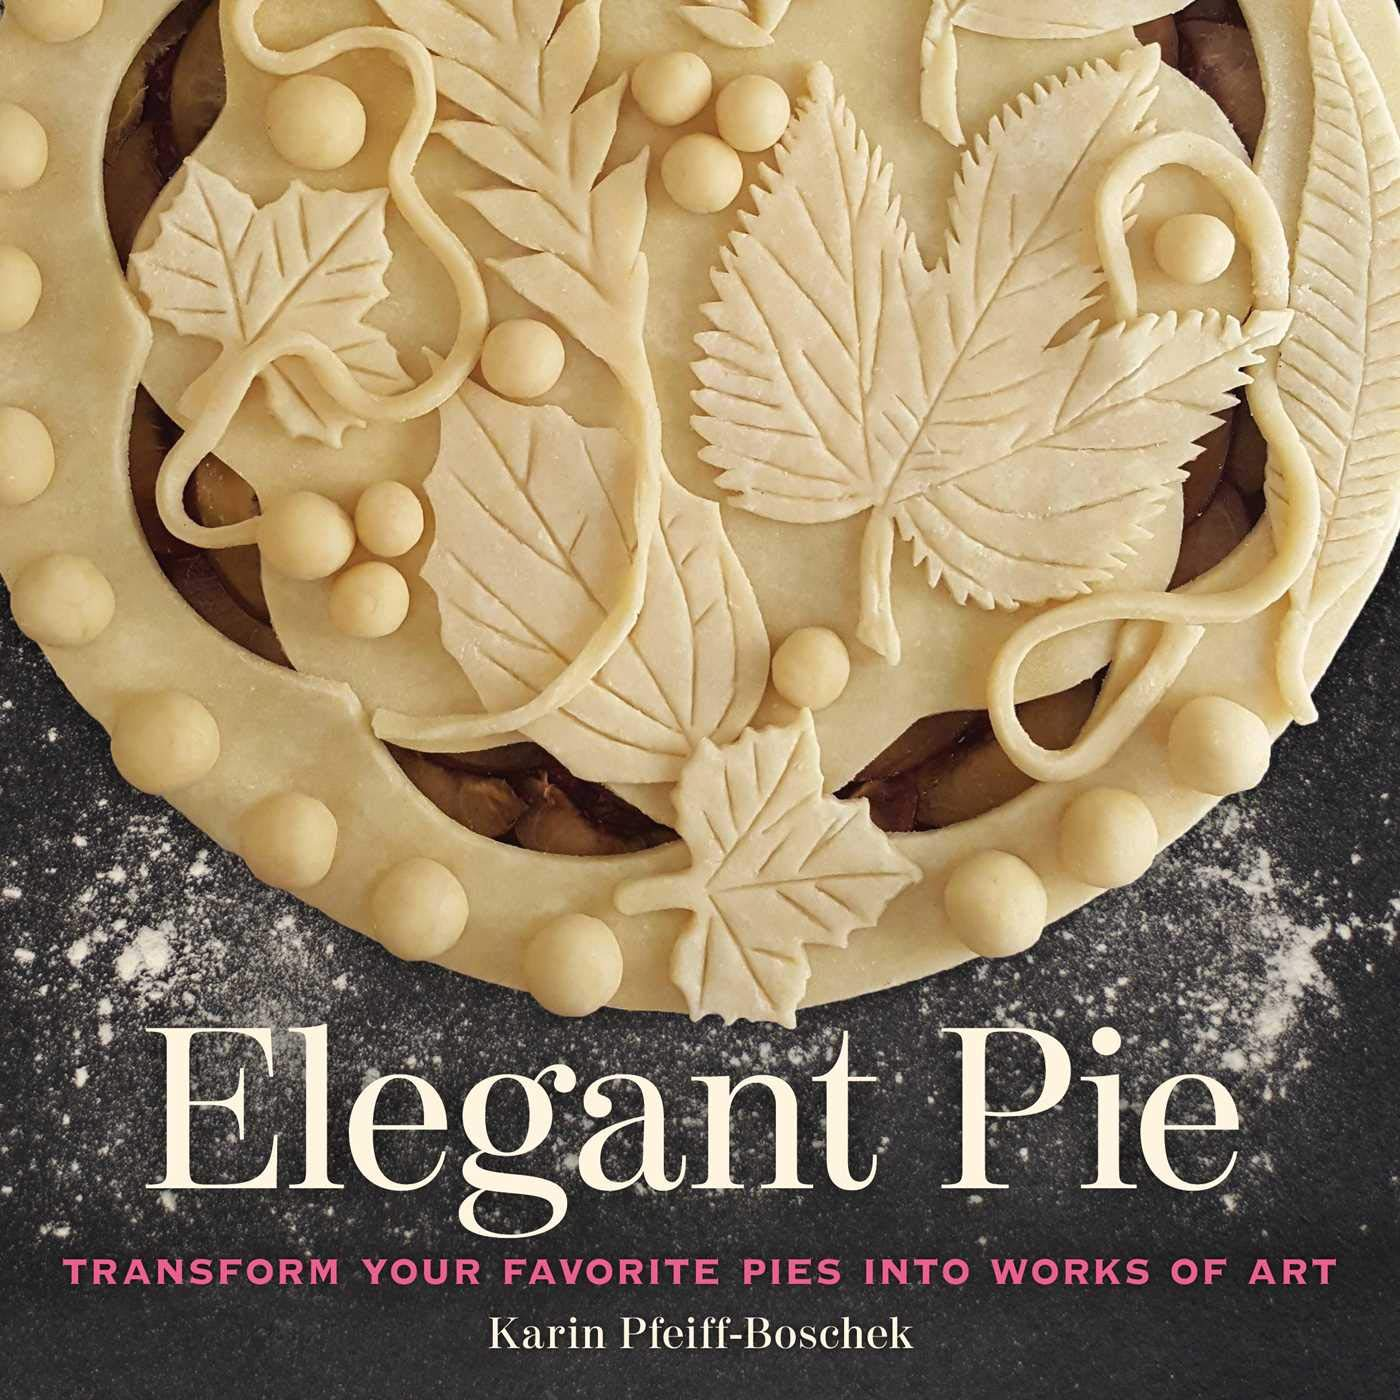 Image OfElegant Pie: Transform Your Favorite Pies Into Works Of Art